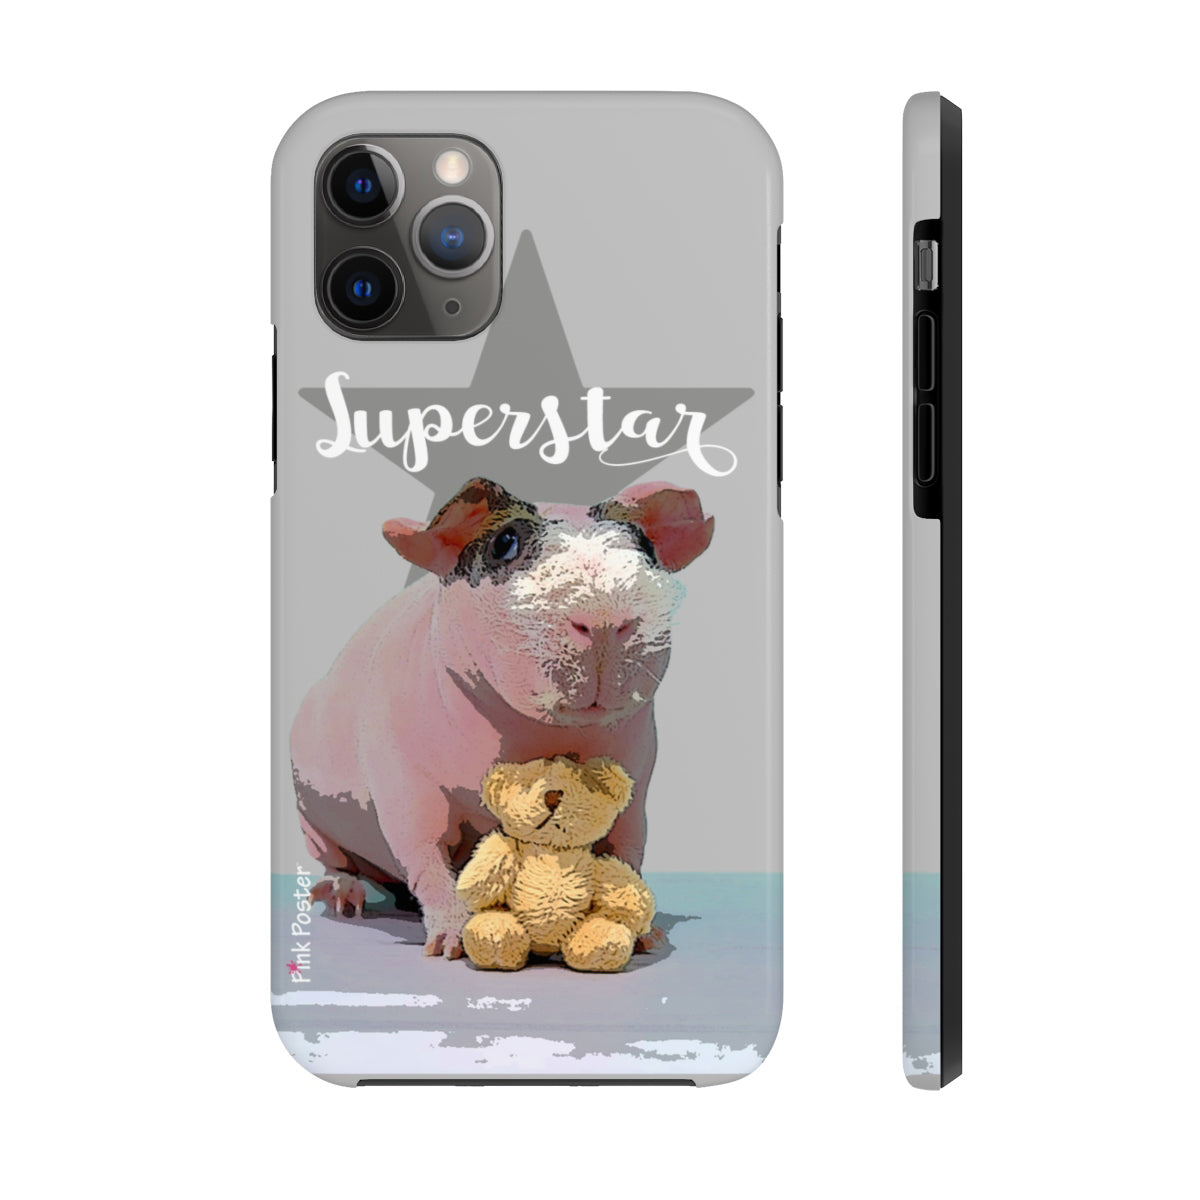 custom phone case with skinned pig art